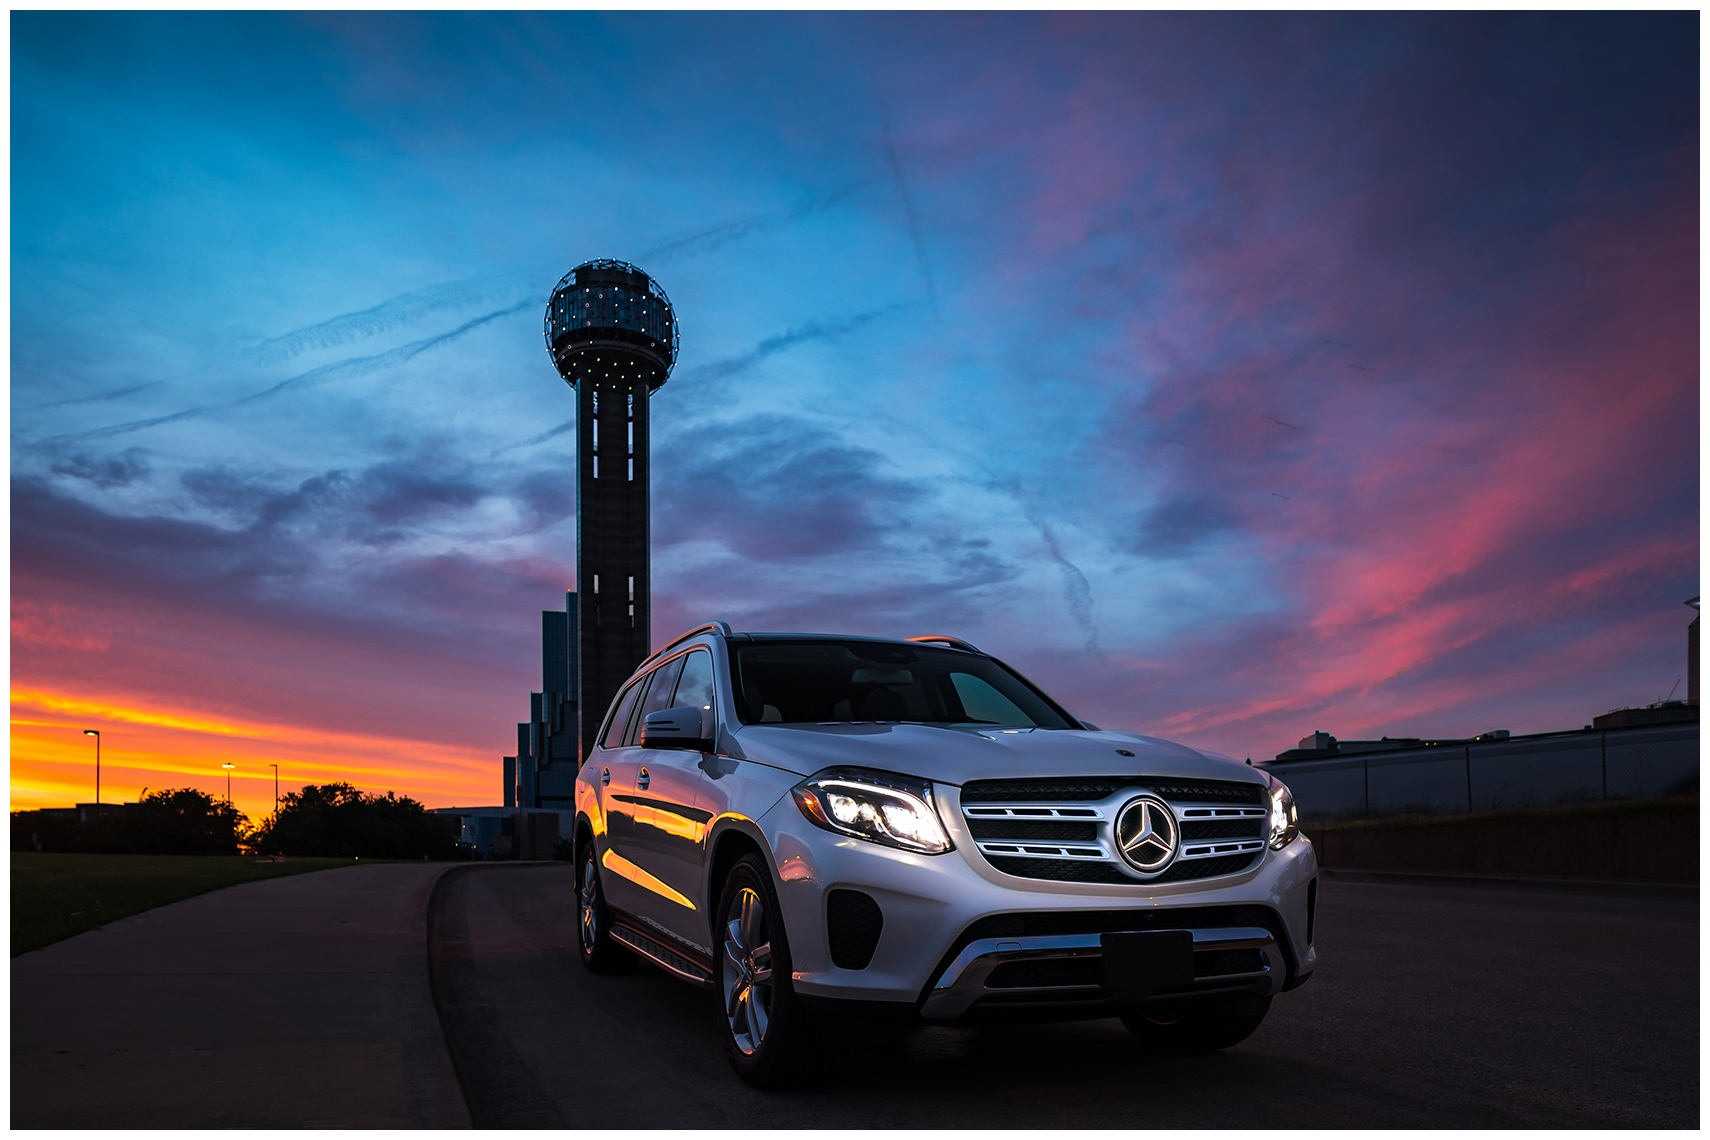 illuminated star mercedes-benz gls 450 dallas reunion tower sunset